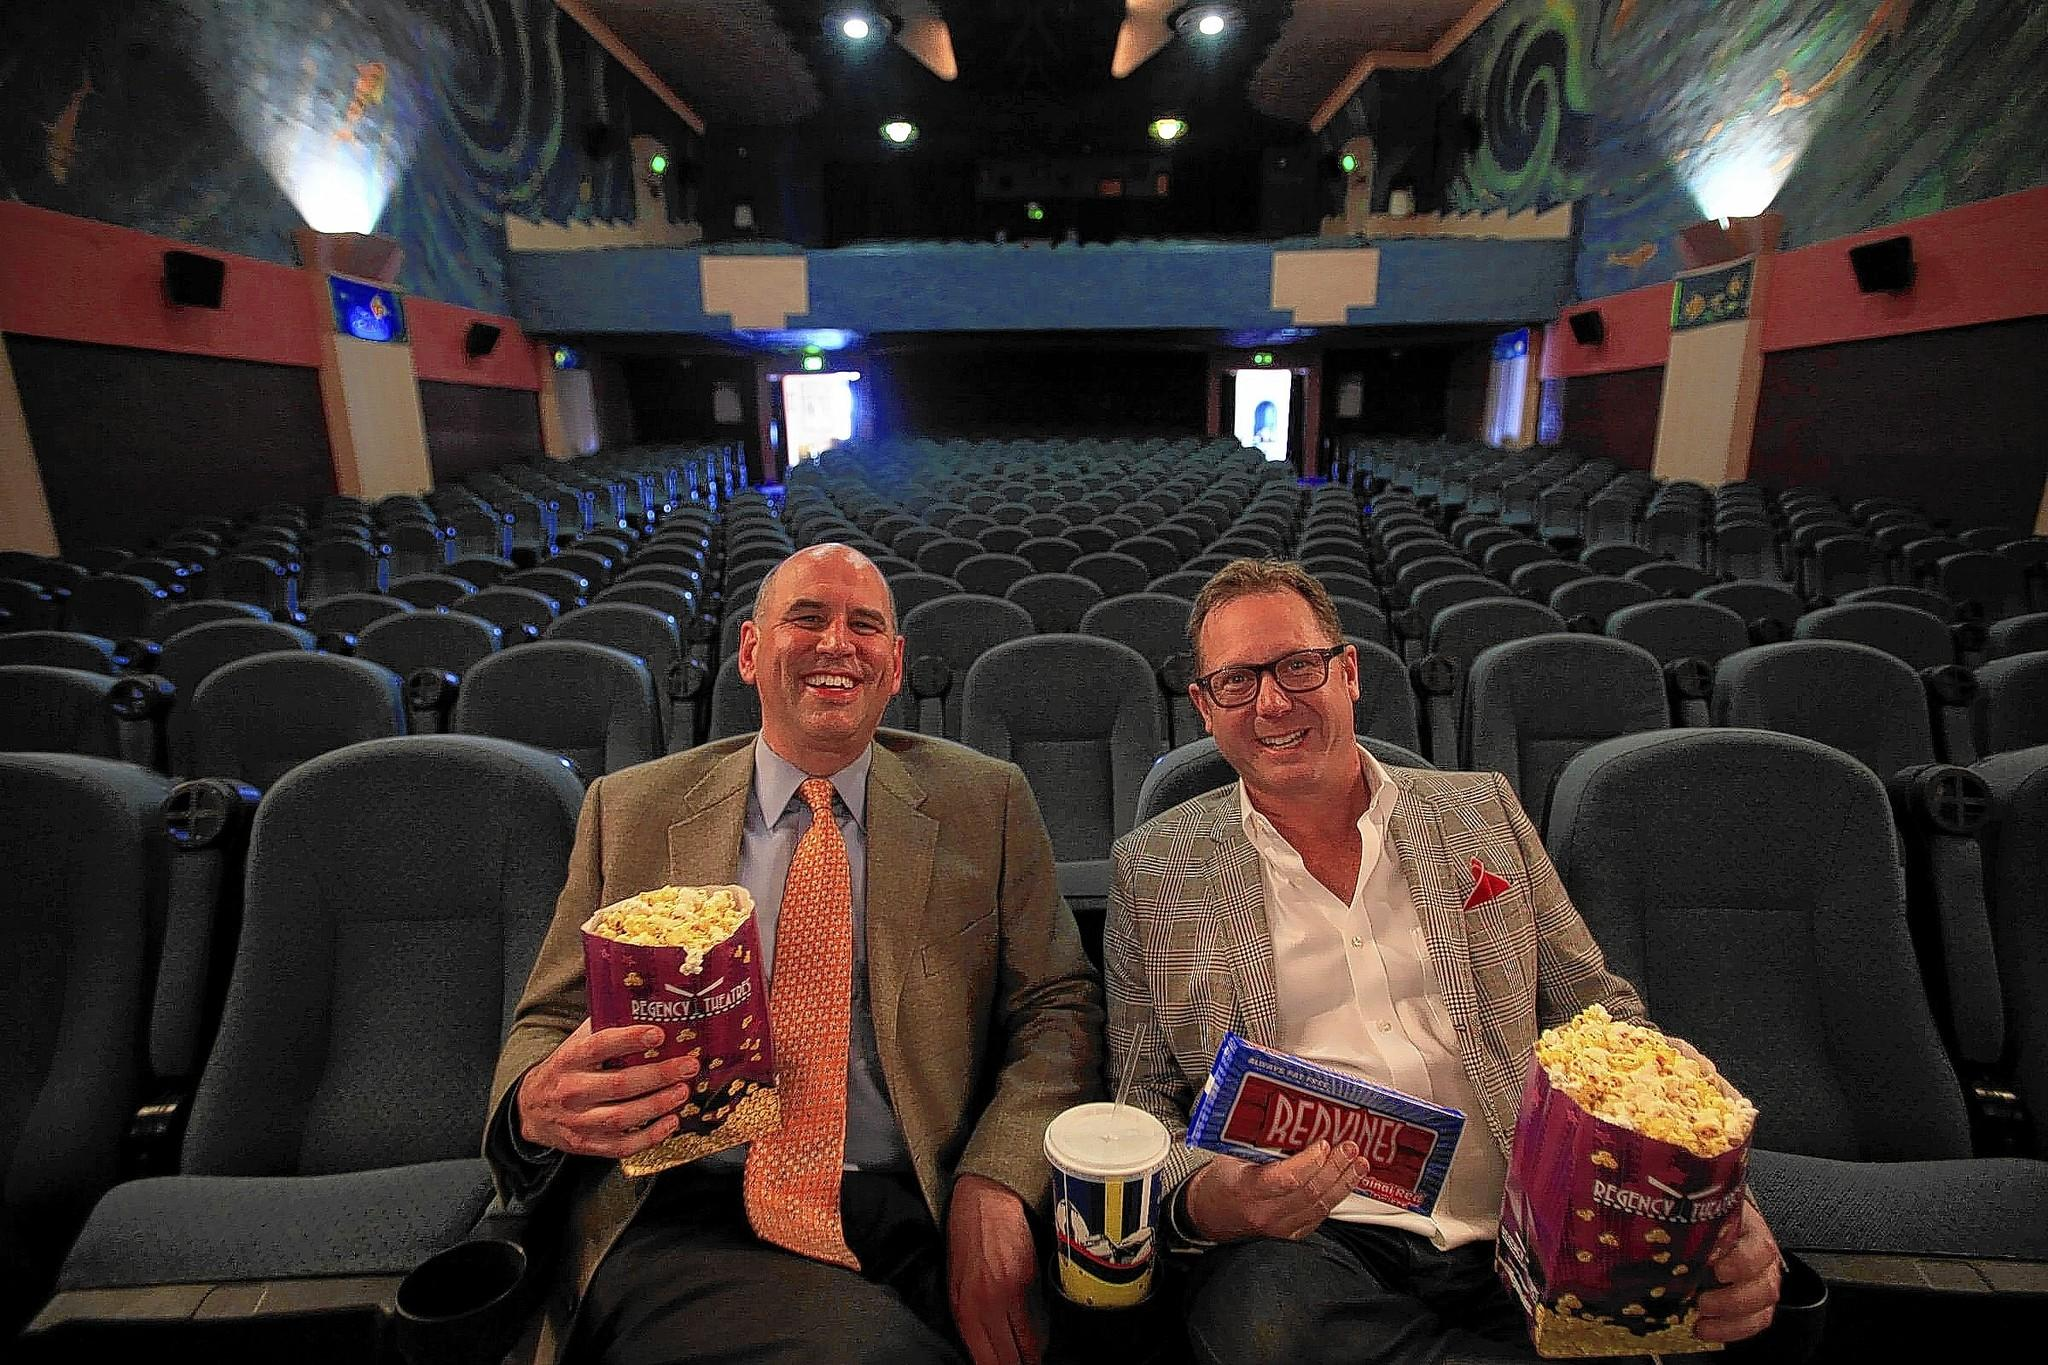 Gregg Schwenk, left, and Todd Quartararo, co-founders of the Newport Beach Film Festival.